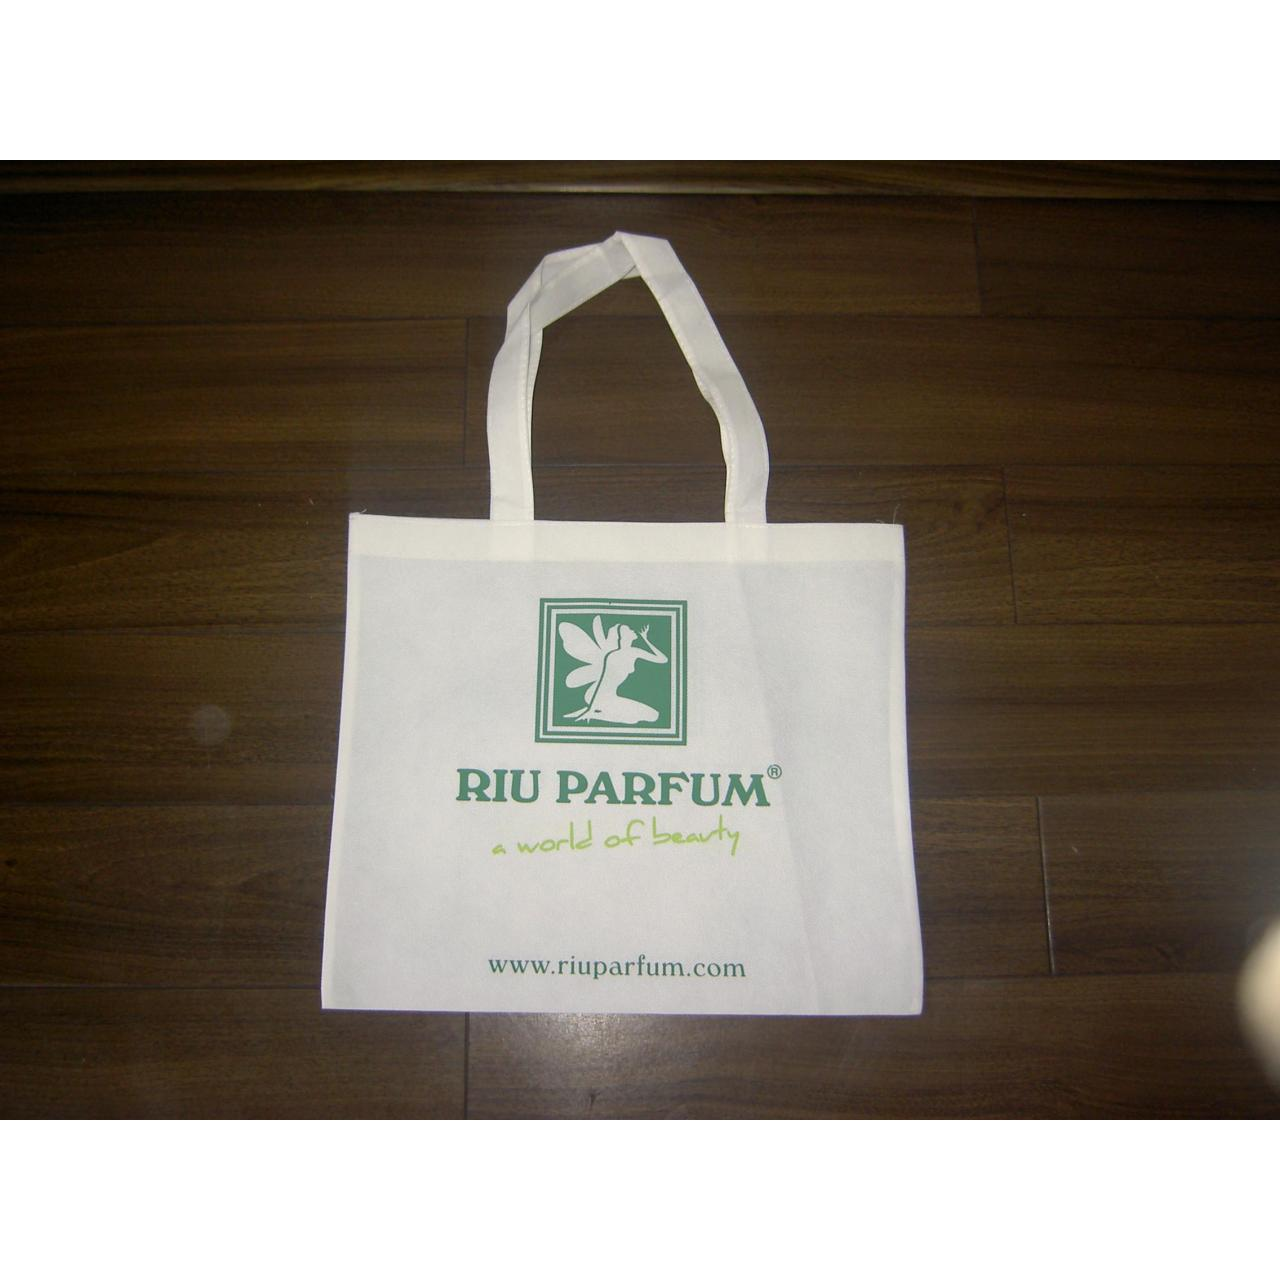 China Planar han Planar hand-held non-woven bags on sale